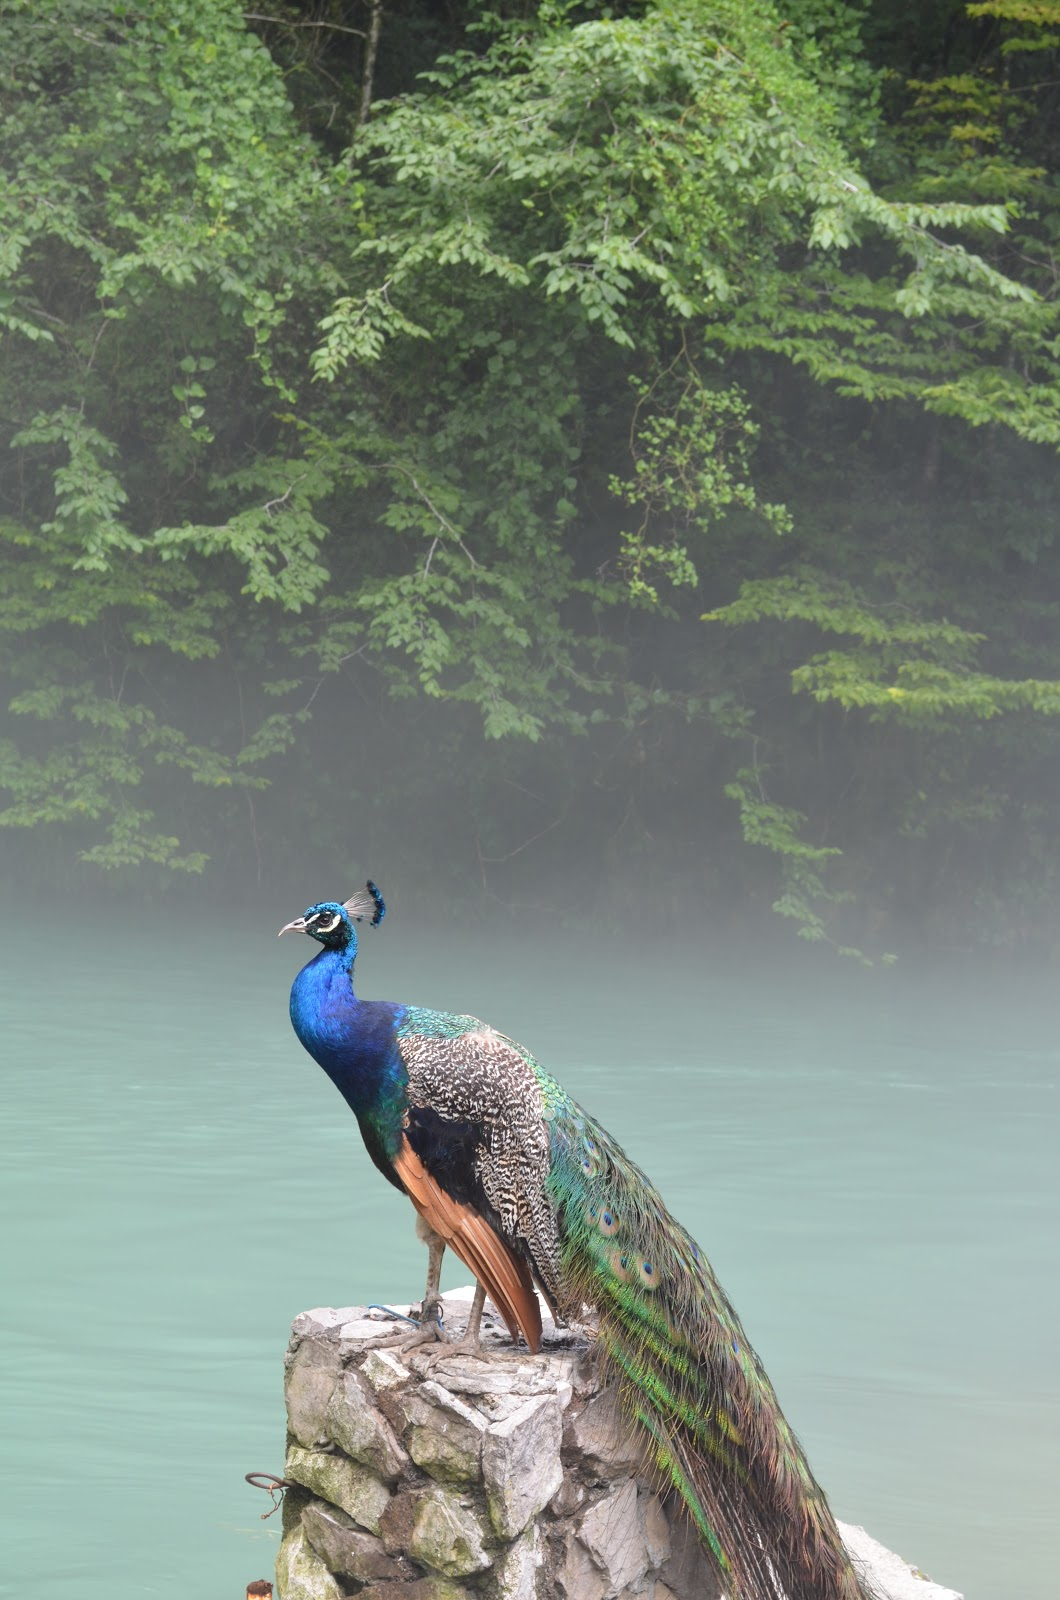 peacock-near-river-pictures